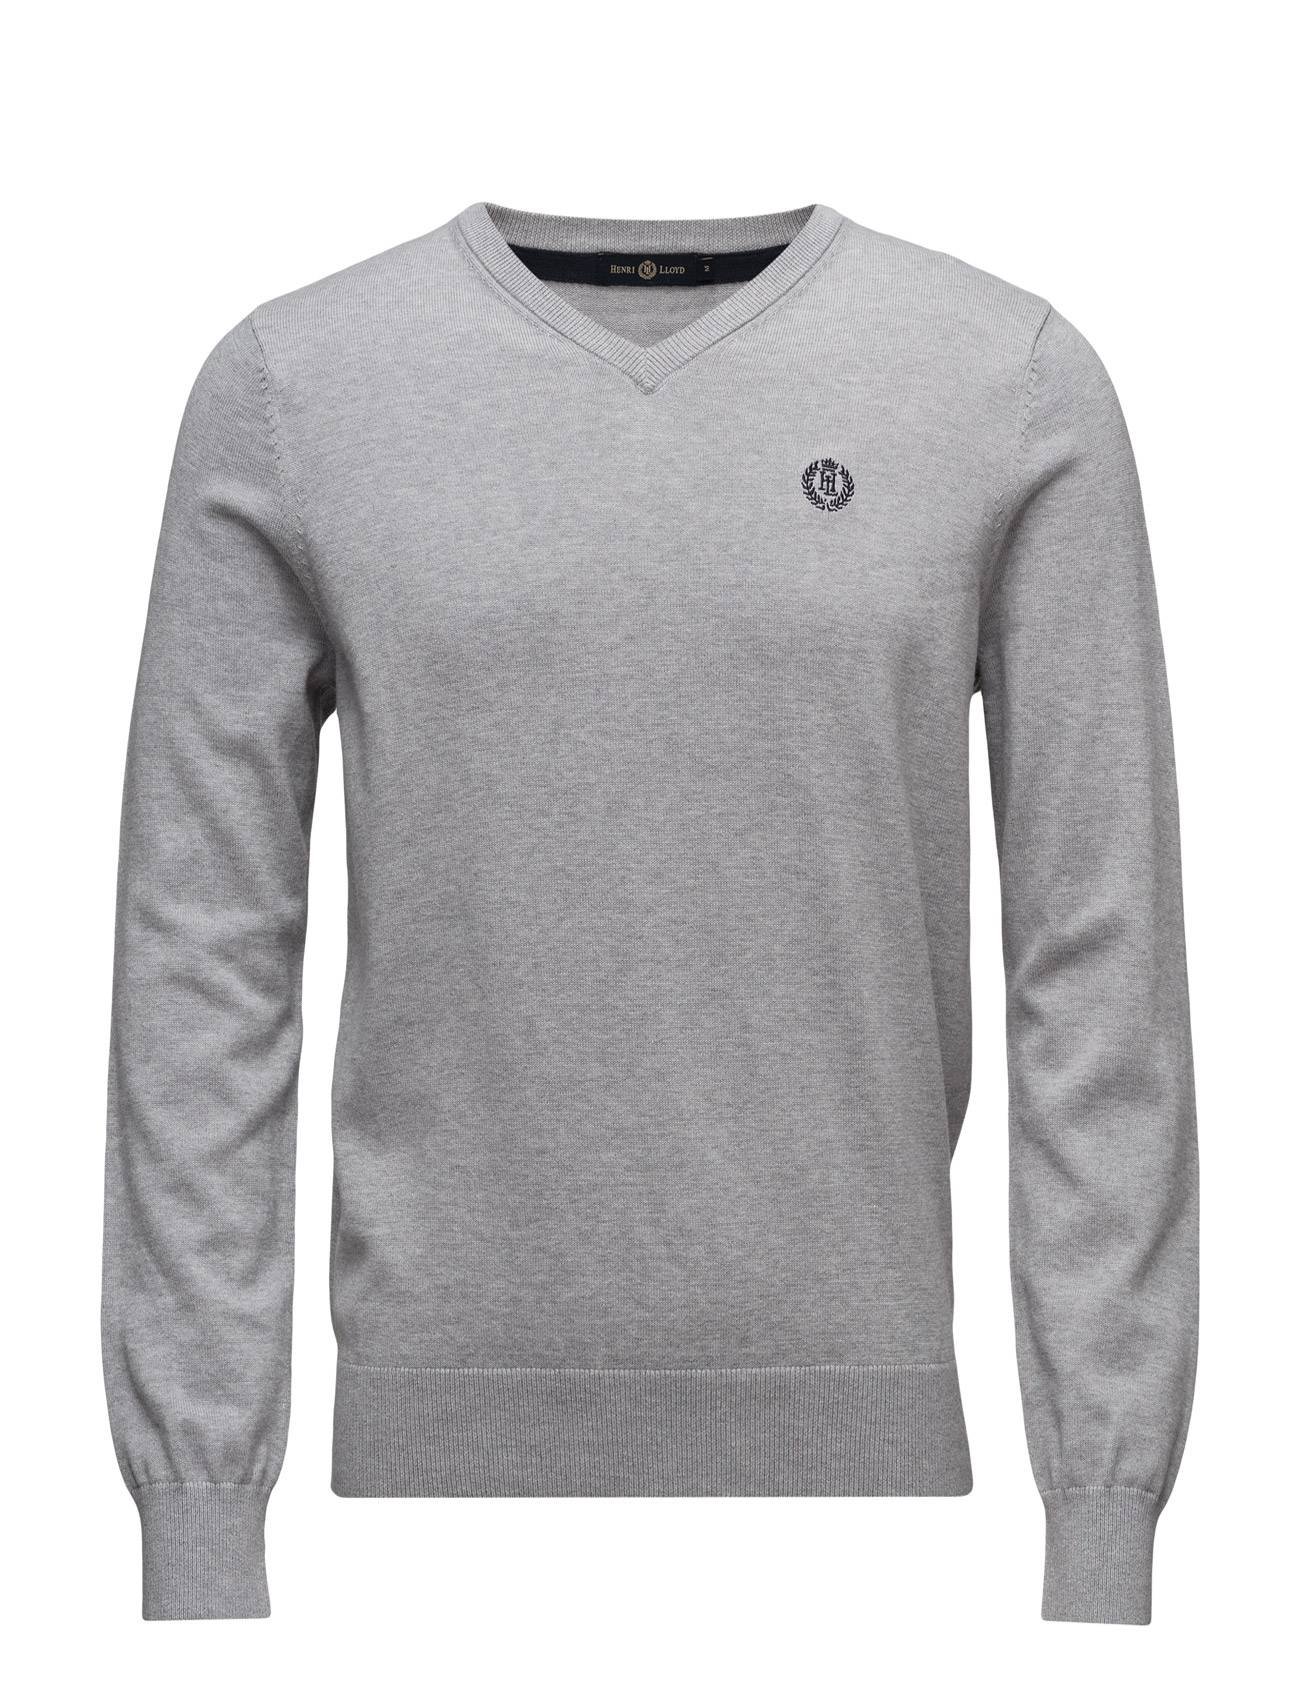 Henri Lloyd Moray Regular V Neck Knit